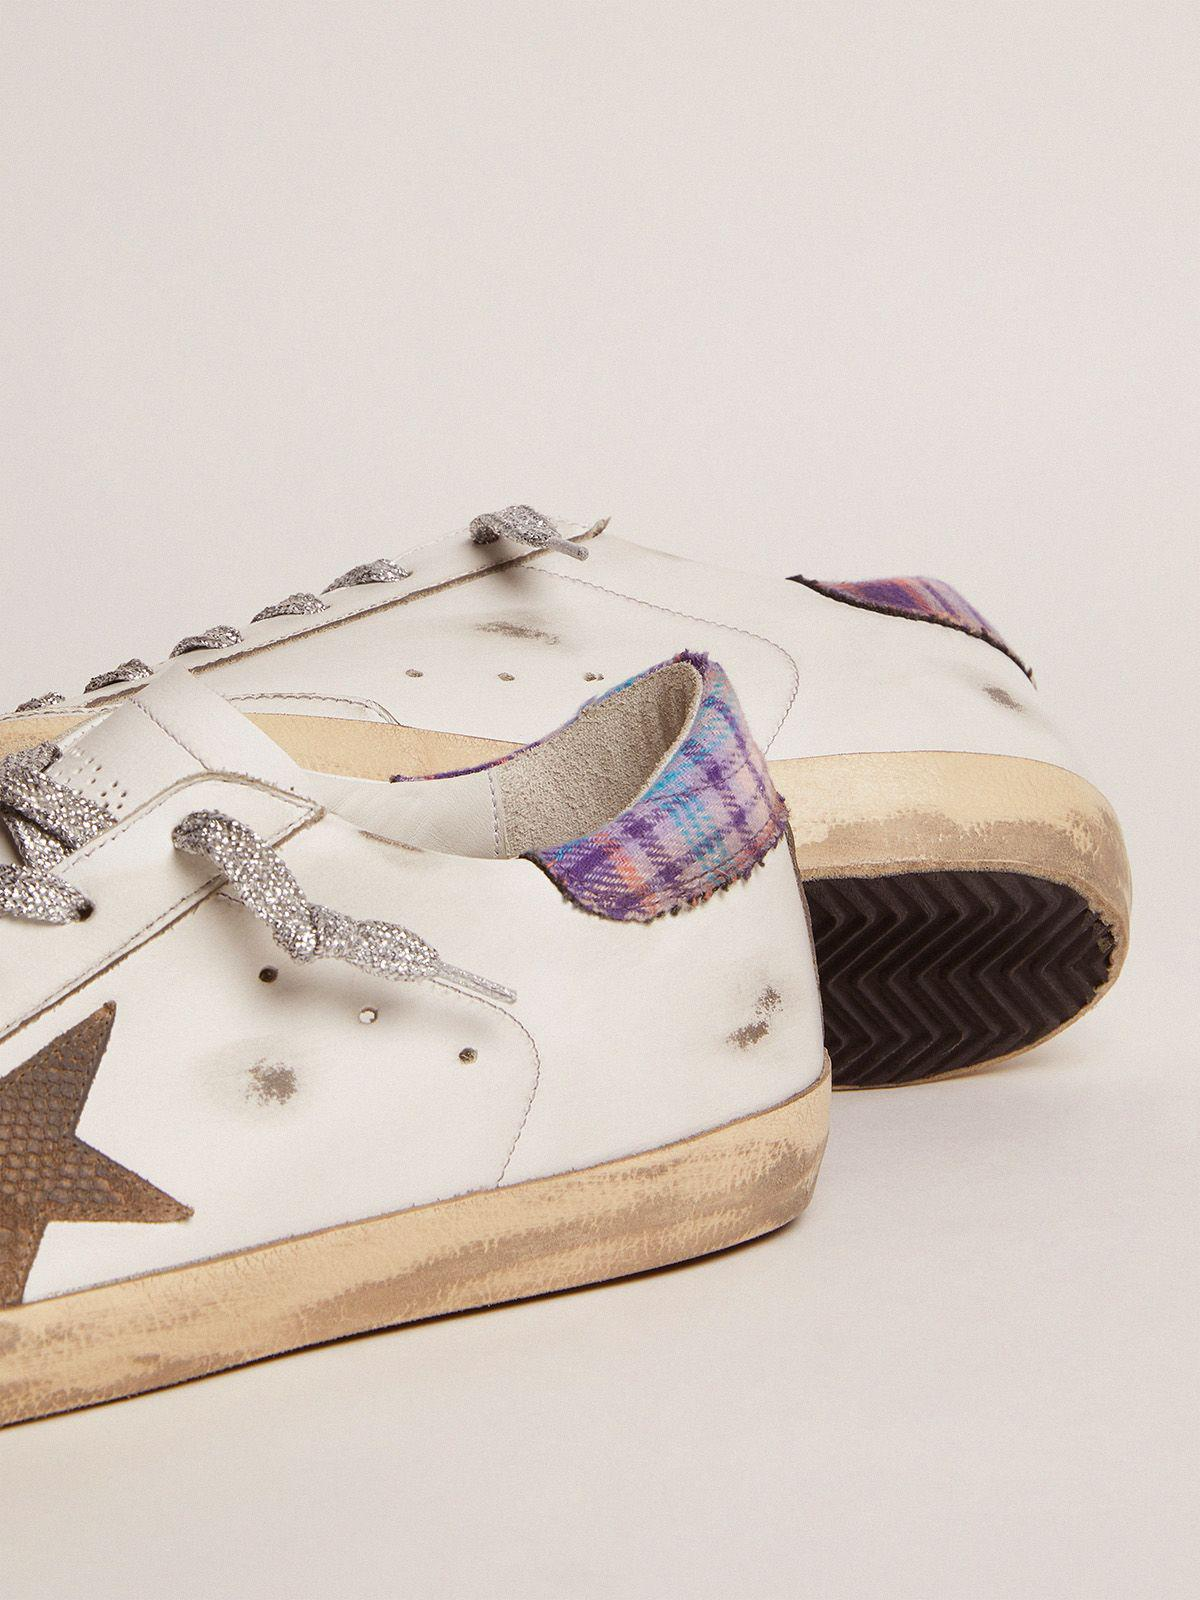 Super-Star sneakers with colored jacquard heel tab and snake-print suede star 2